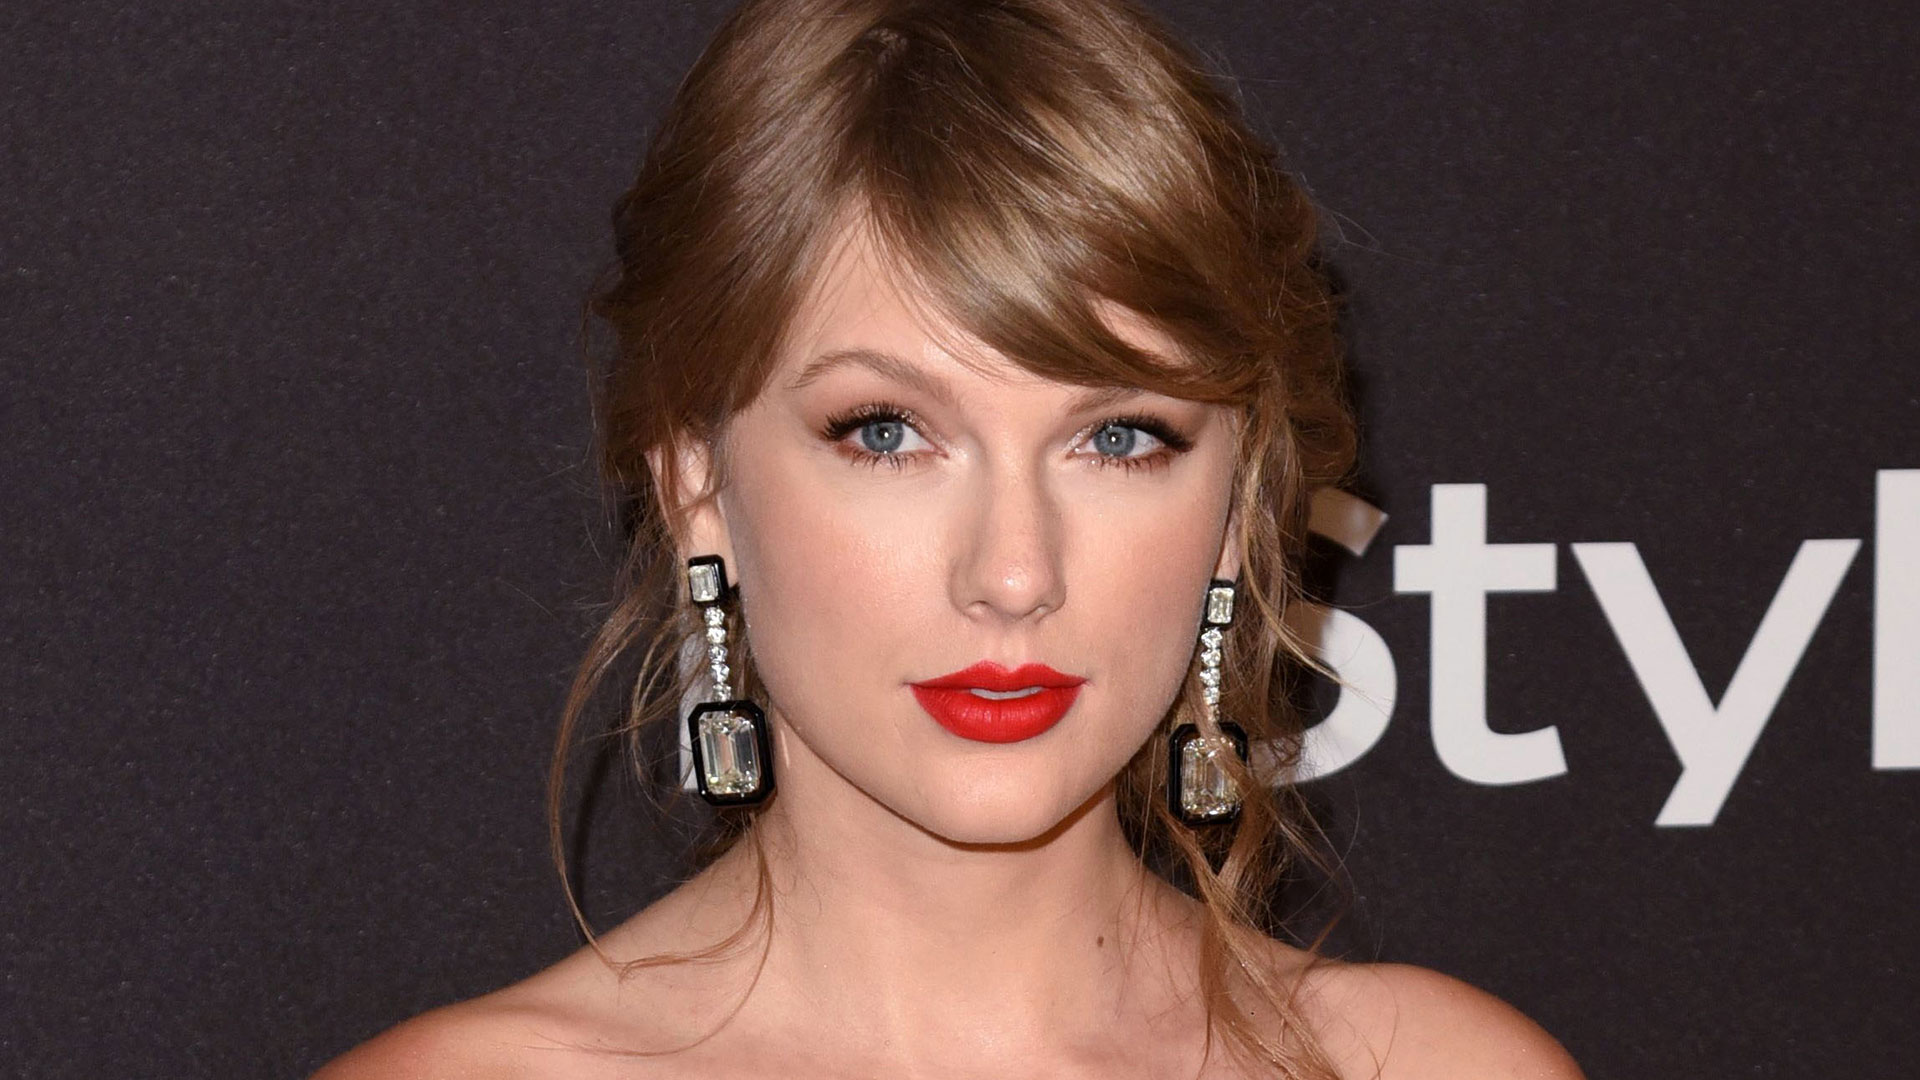 Taylor Swift S Mom Filmed Her Post Surgery Haze Leaked The Clip Sheknows